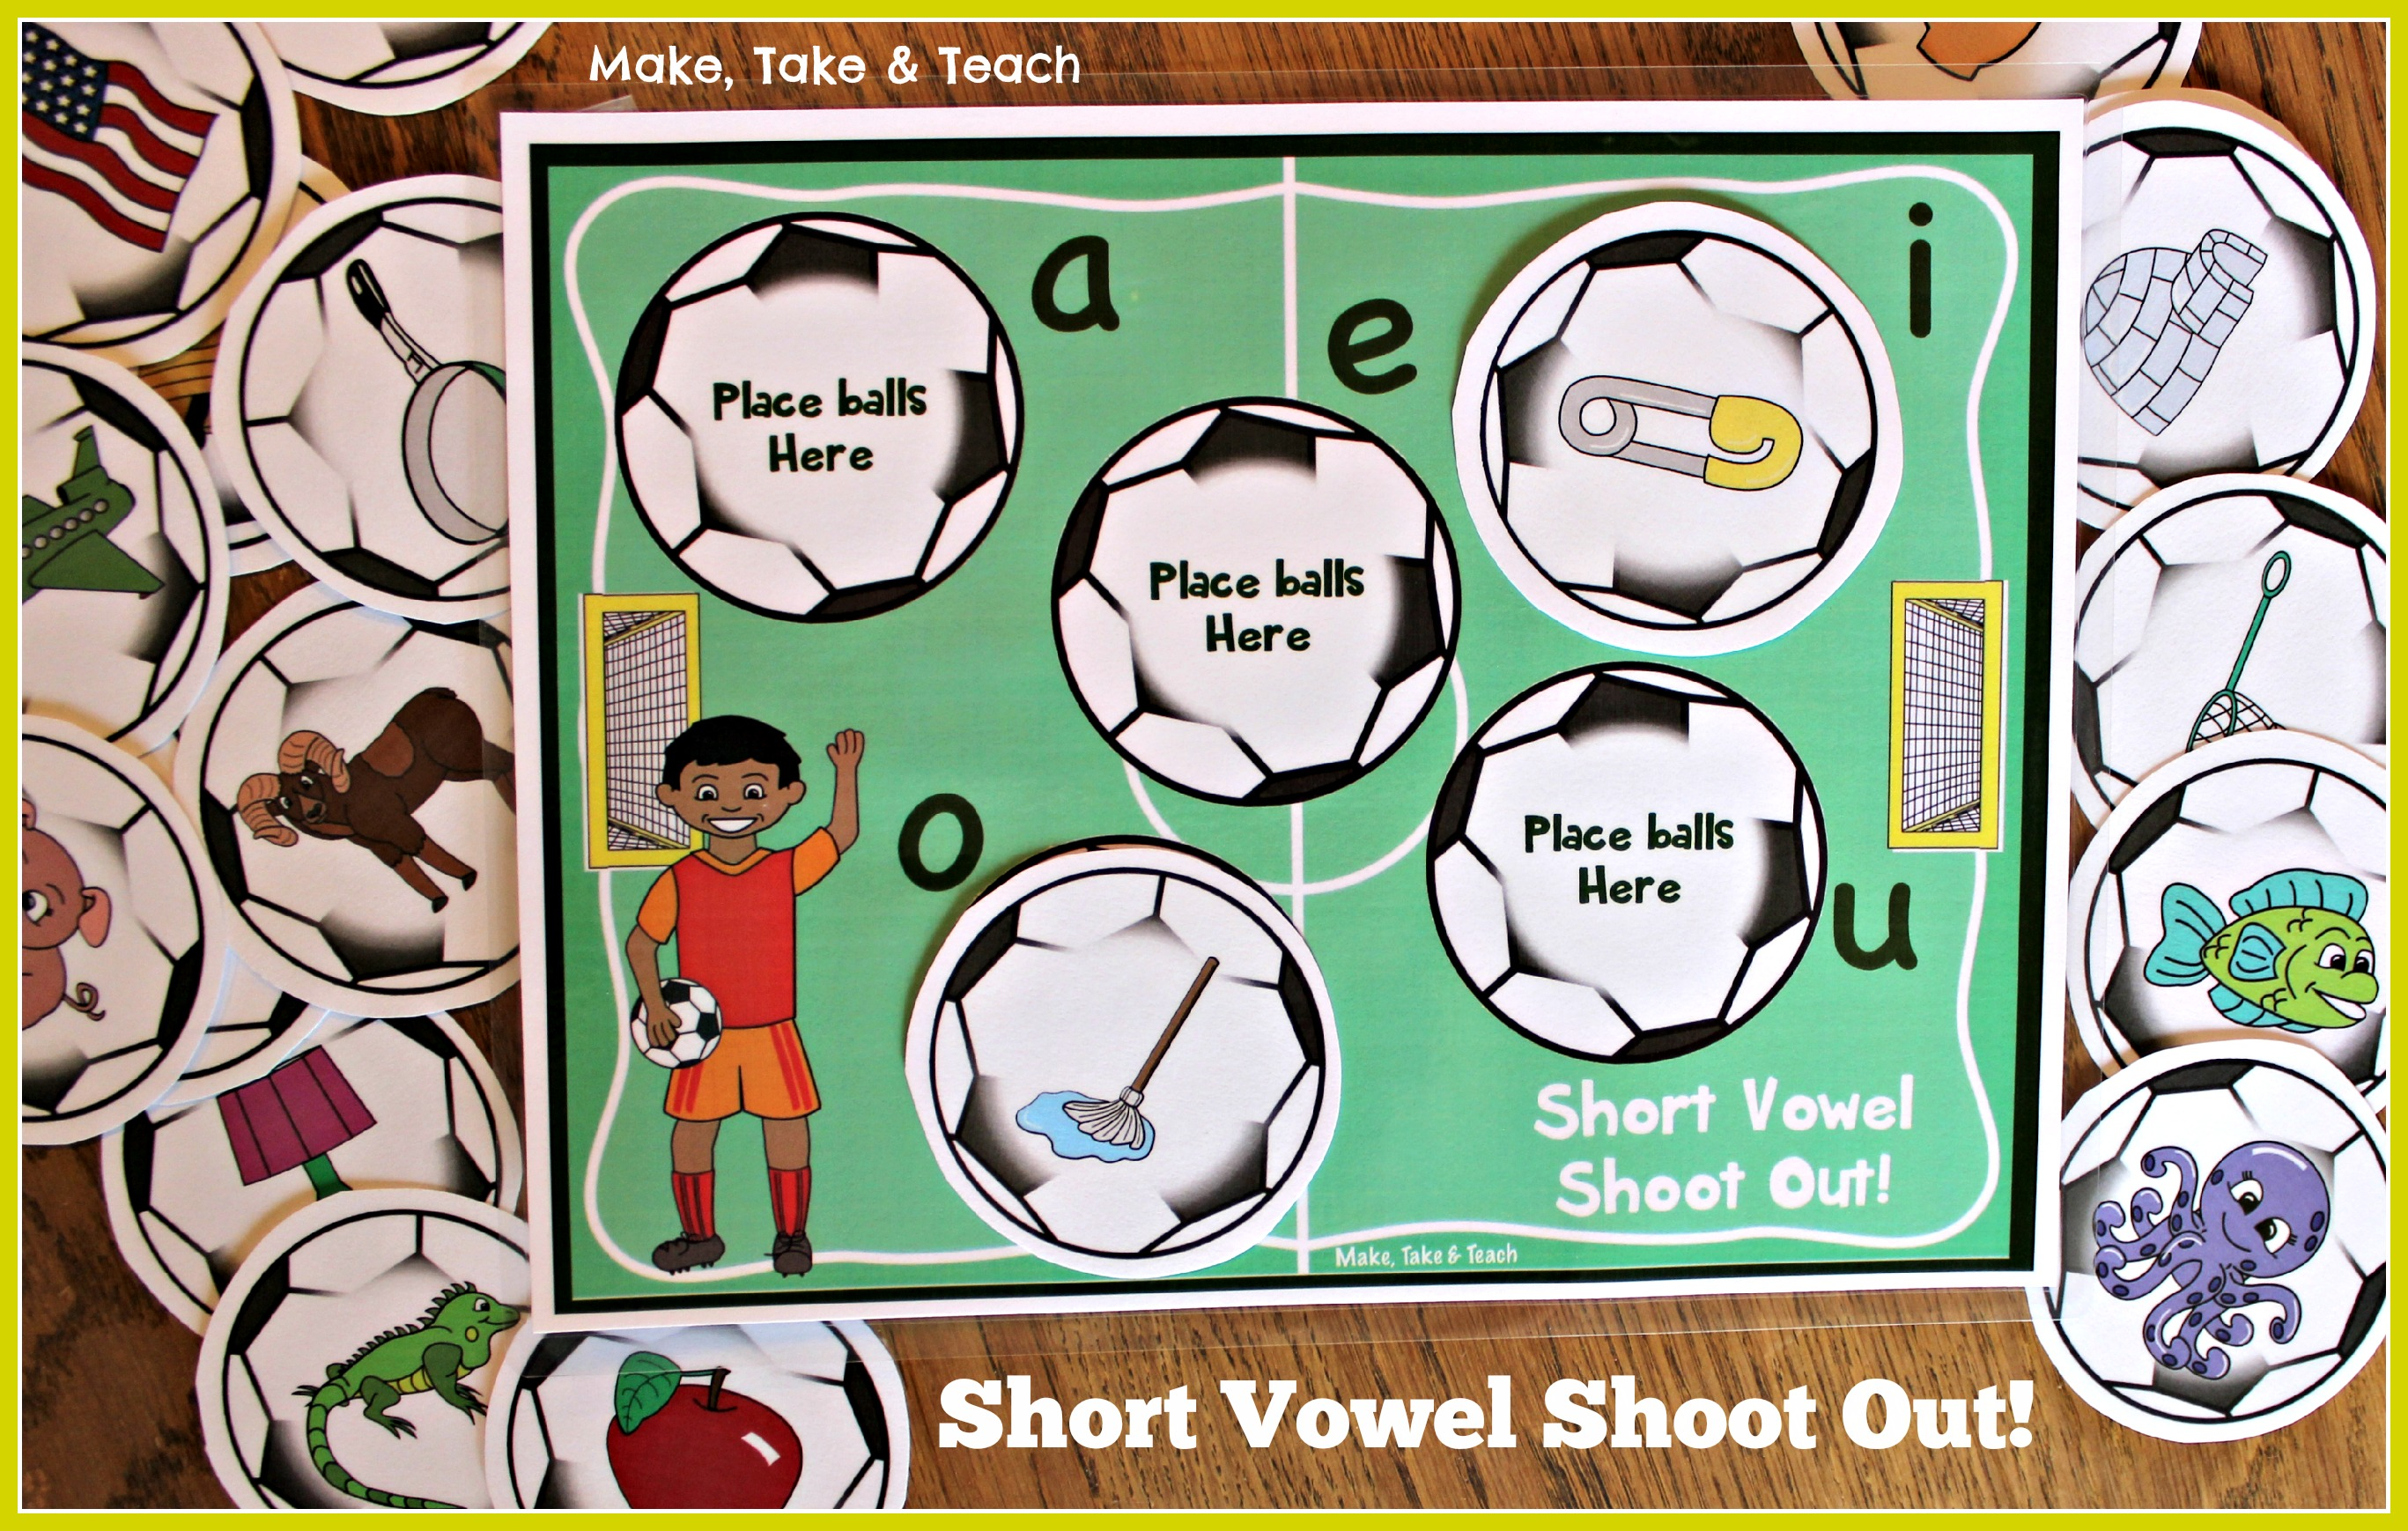 Short Vowel Soccer Shoot Out